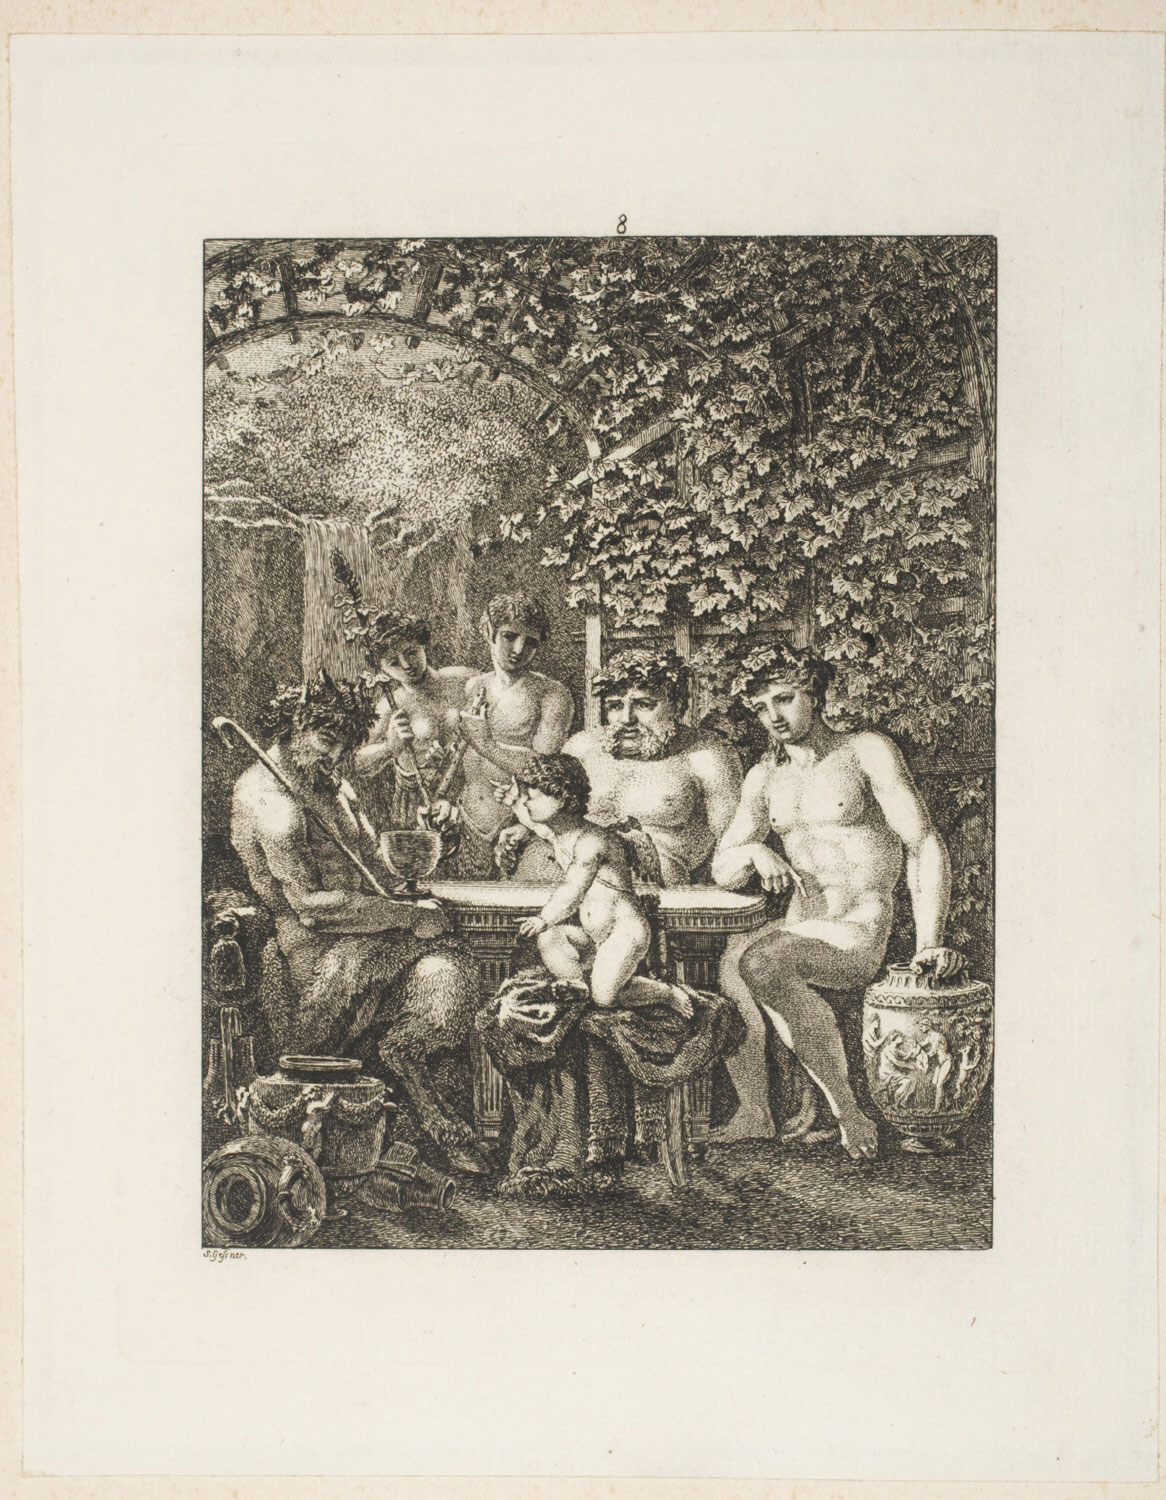 Bacchus and His Followers in a Grape Arbor